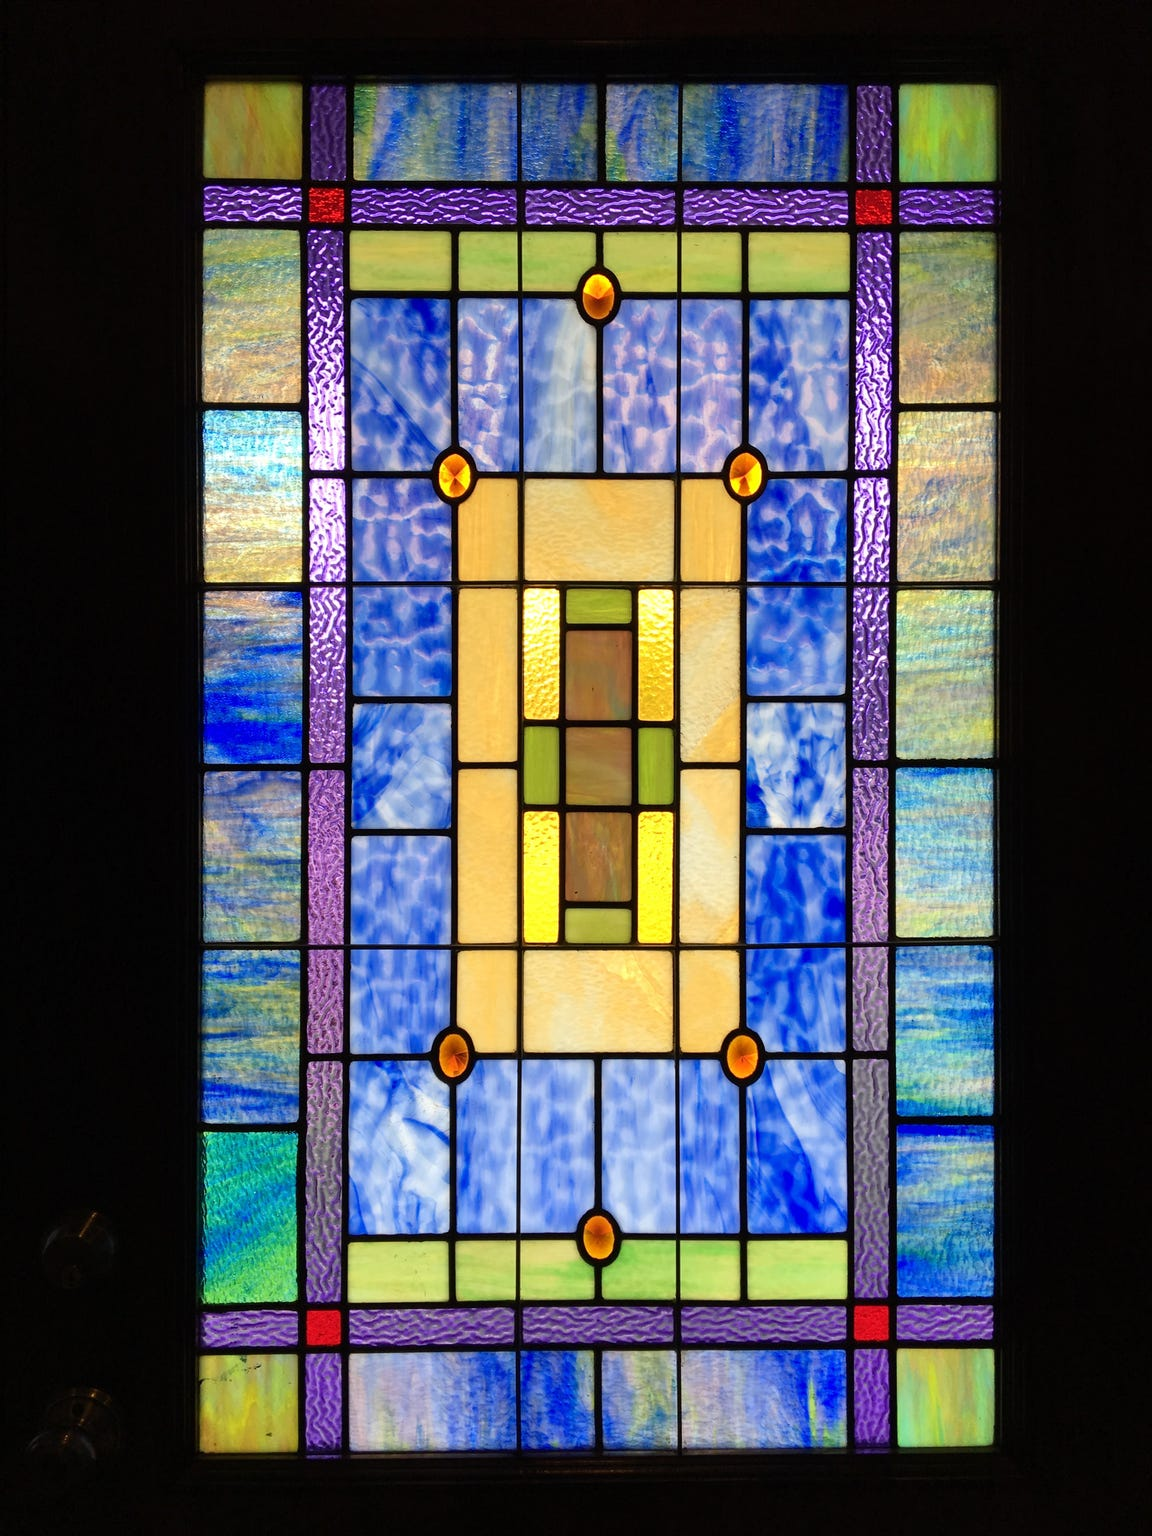 Stained glass, photographed July 19, 2018, adorns the doors of the funeral home in Winona where Lola Flowers' body awaits her funeral. Flowers passed away on July 14, 2018. Her son Curtis Flowers is on death row, having been tried six times for the July 1996 quadruple murders at Tardy Furniture in Winona.